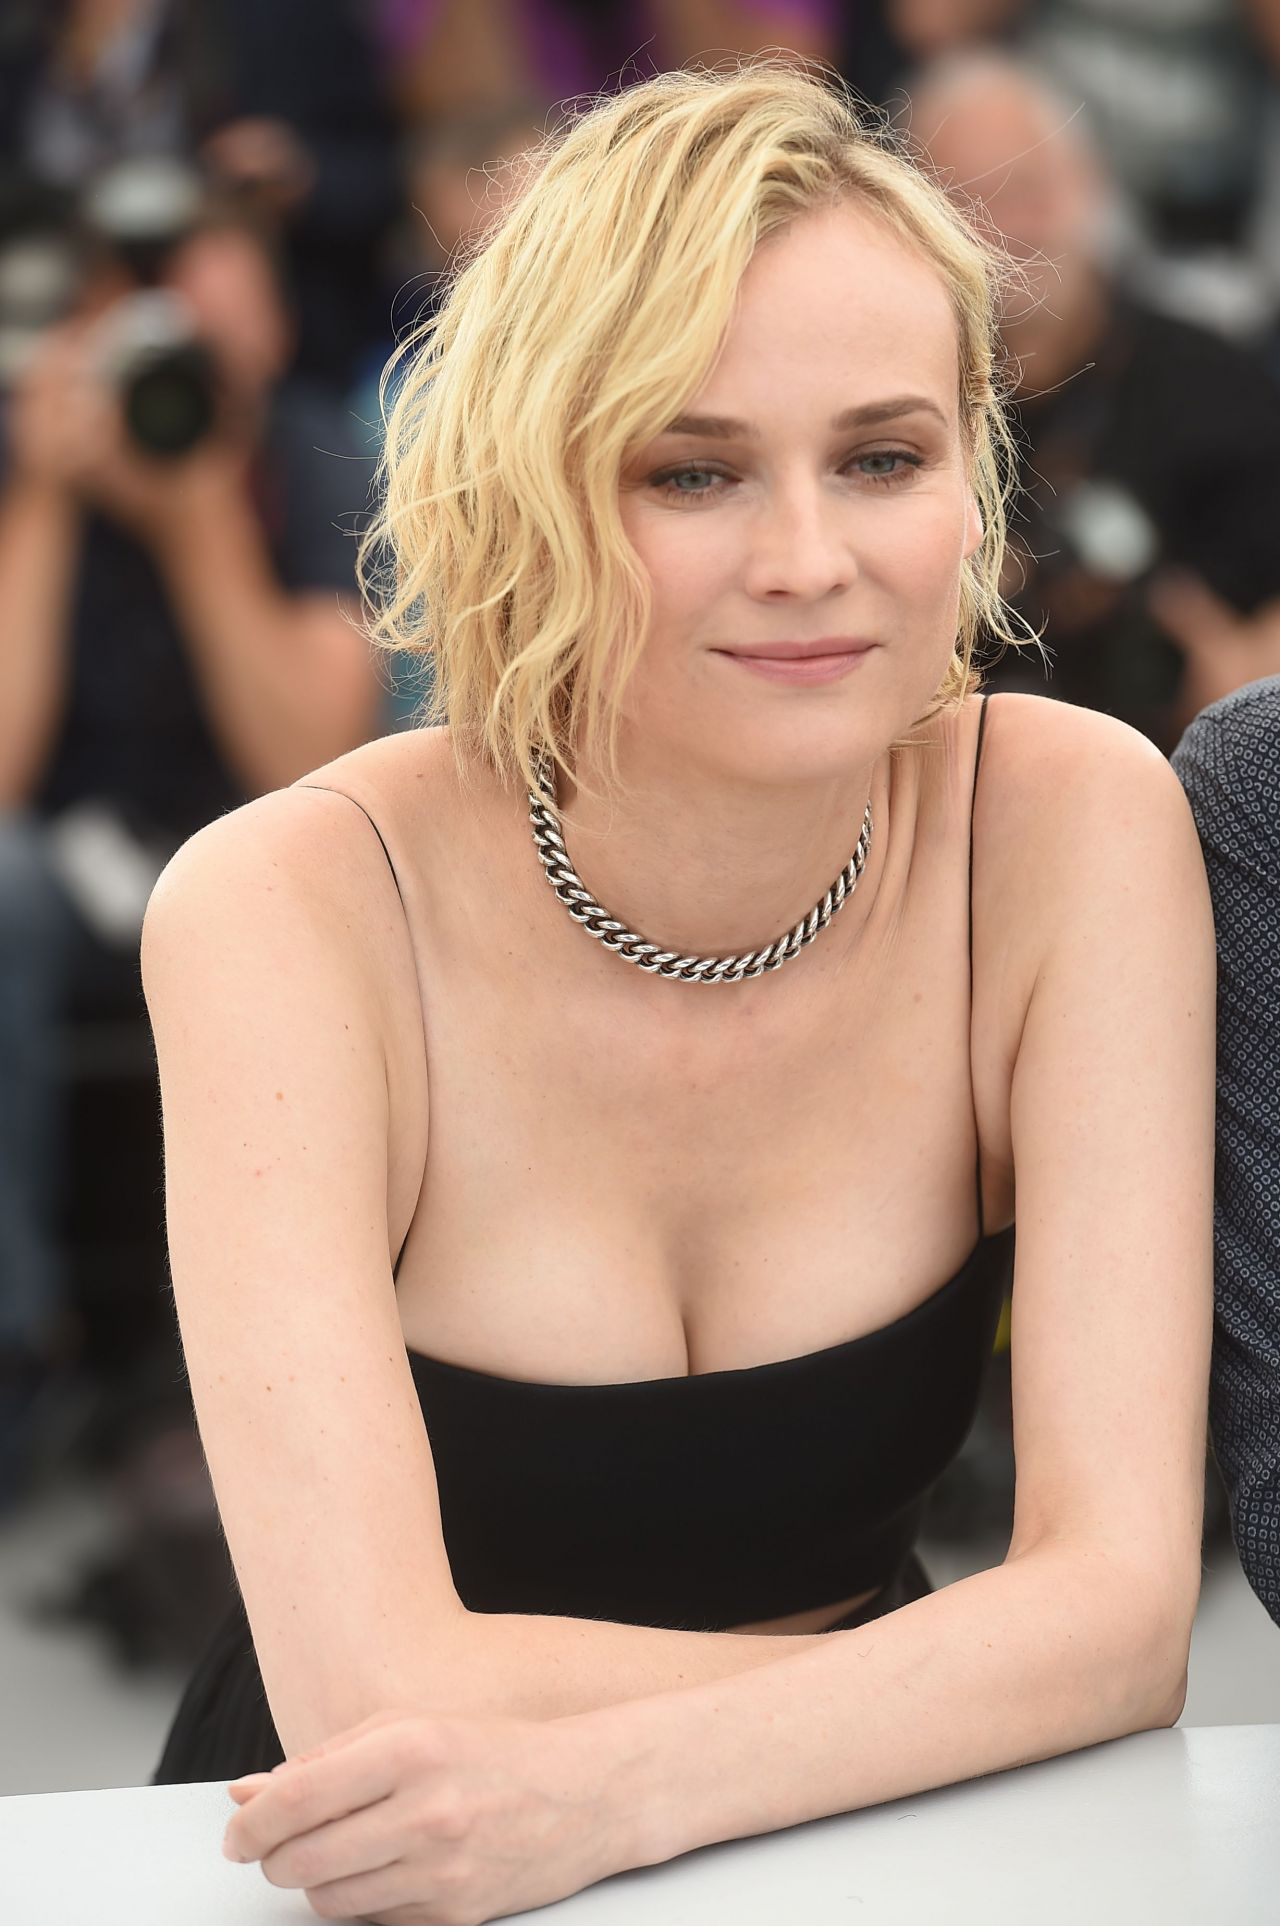 Cleavage Diane Kruger nudes (19 foto and video), Sexy, Hot, Twitter, lingerie 2006